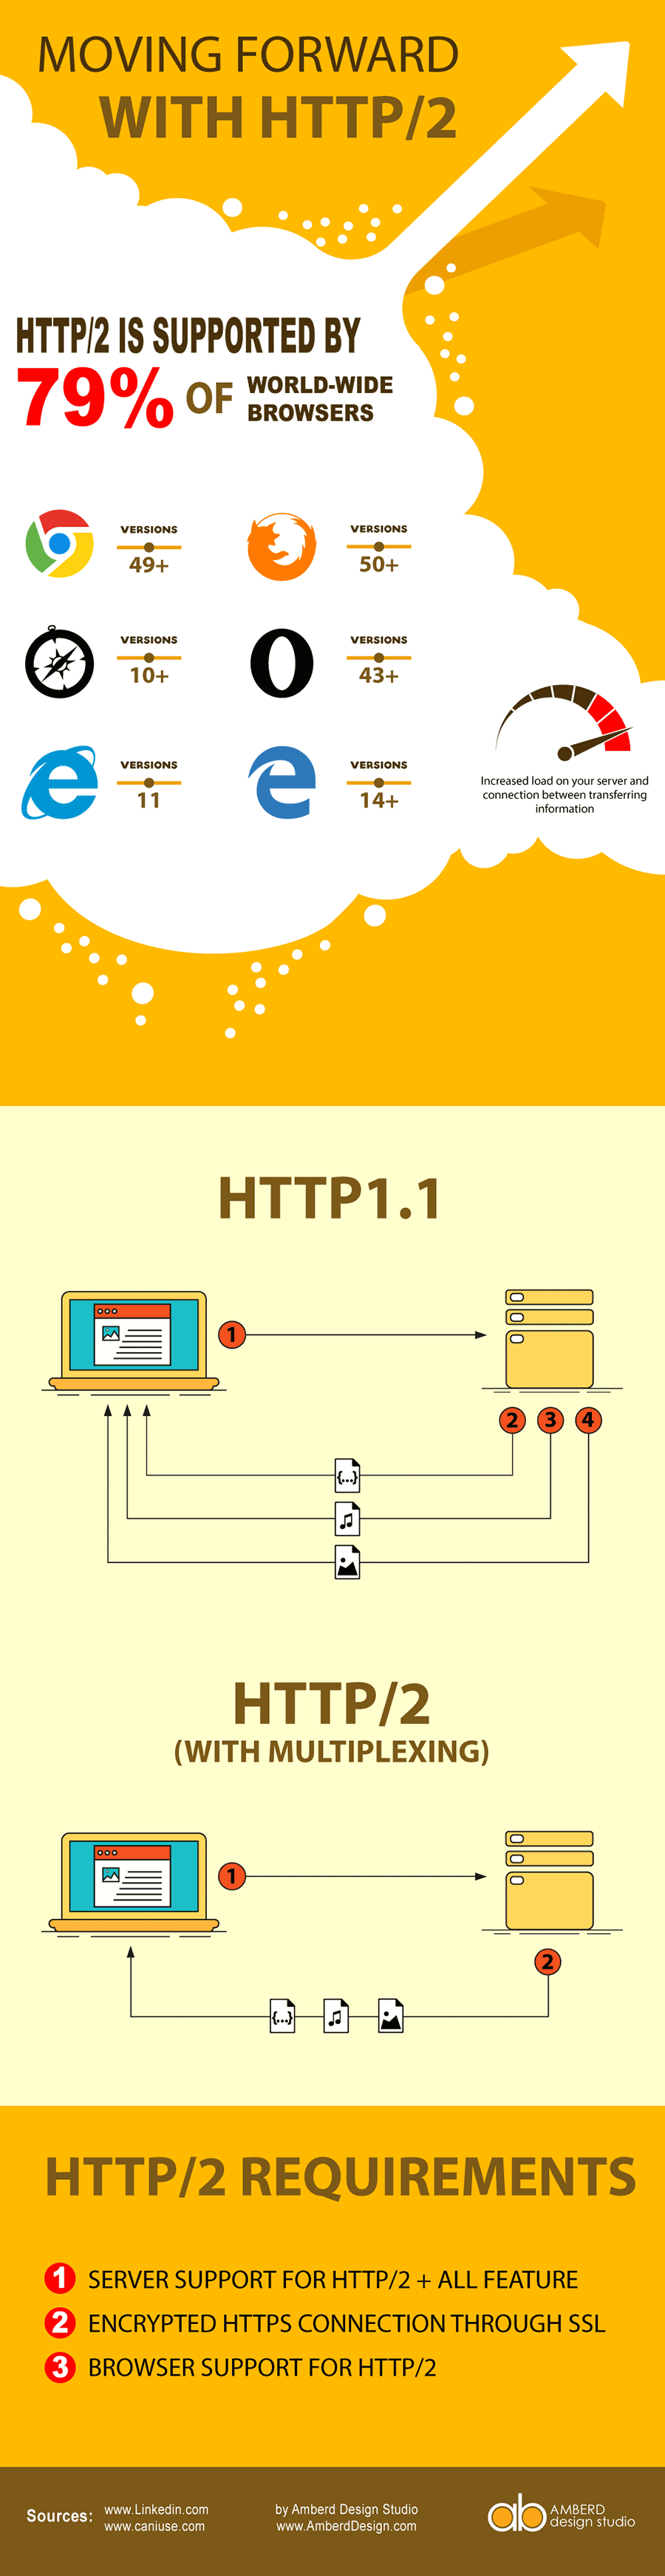 Moving Forward with HTTP/2